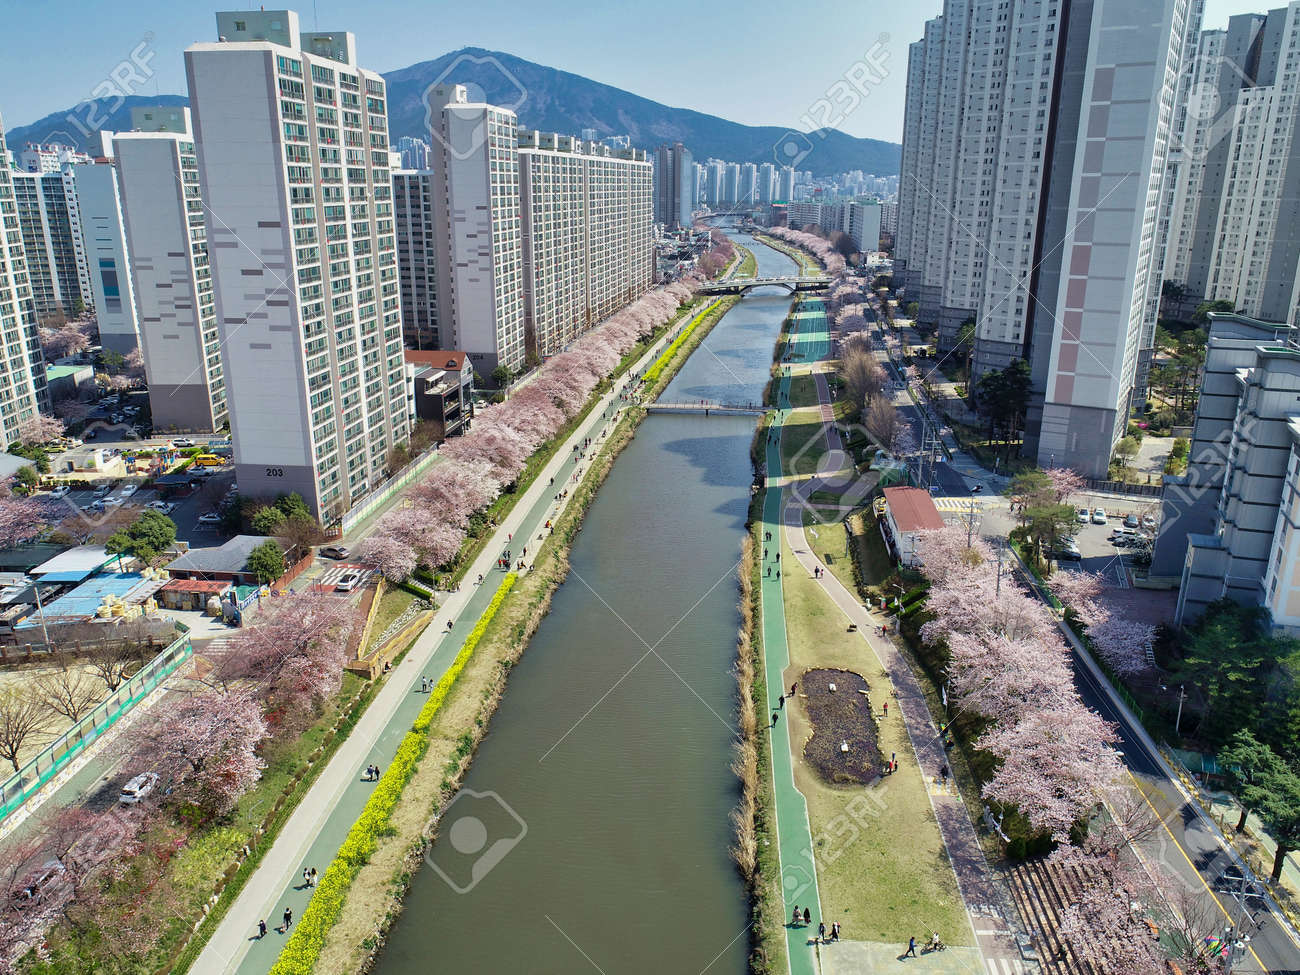 Spring of Oncheoncheon Citizens Park, Busan, South Korea, Asia - 162844828